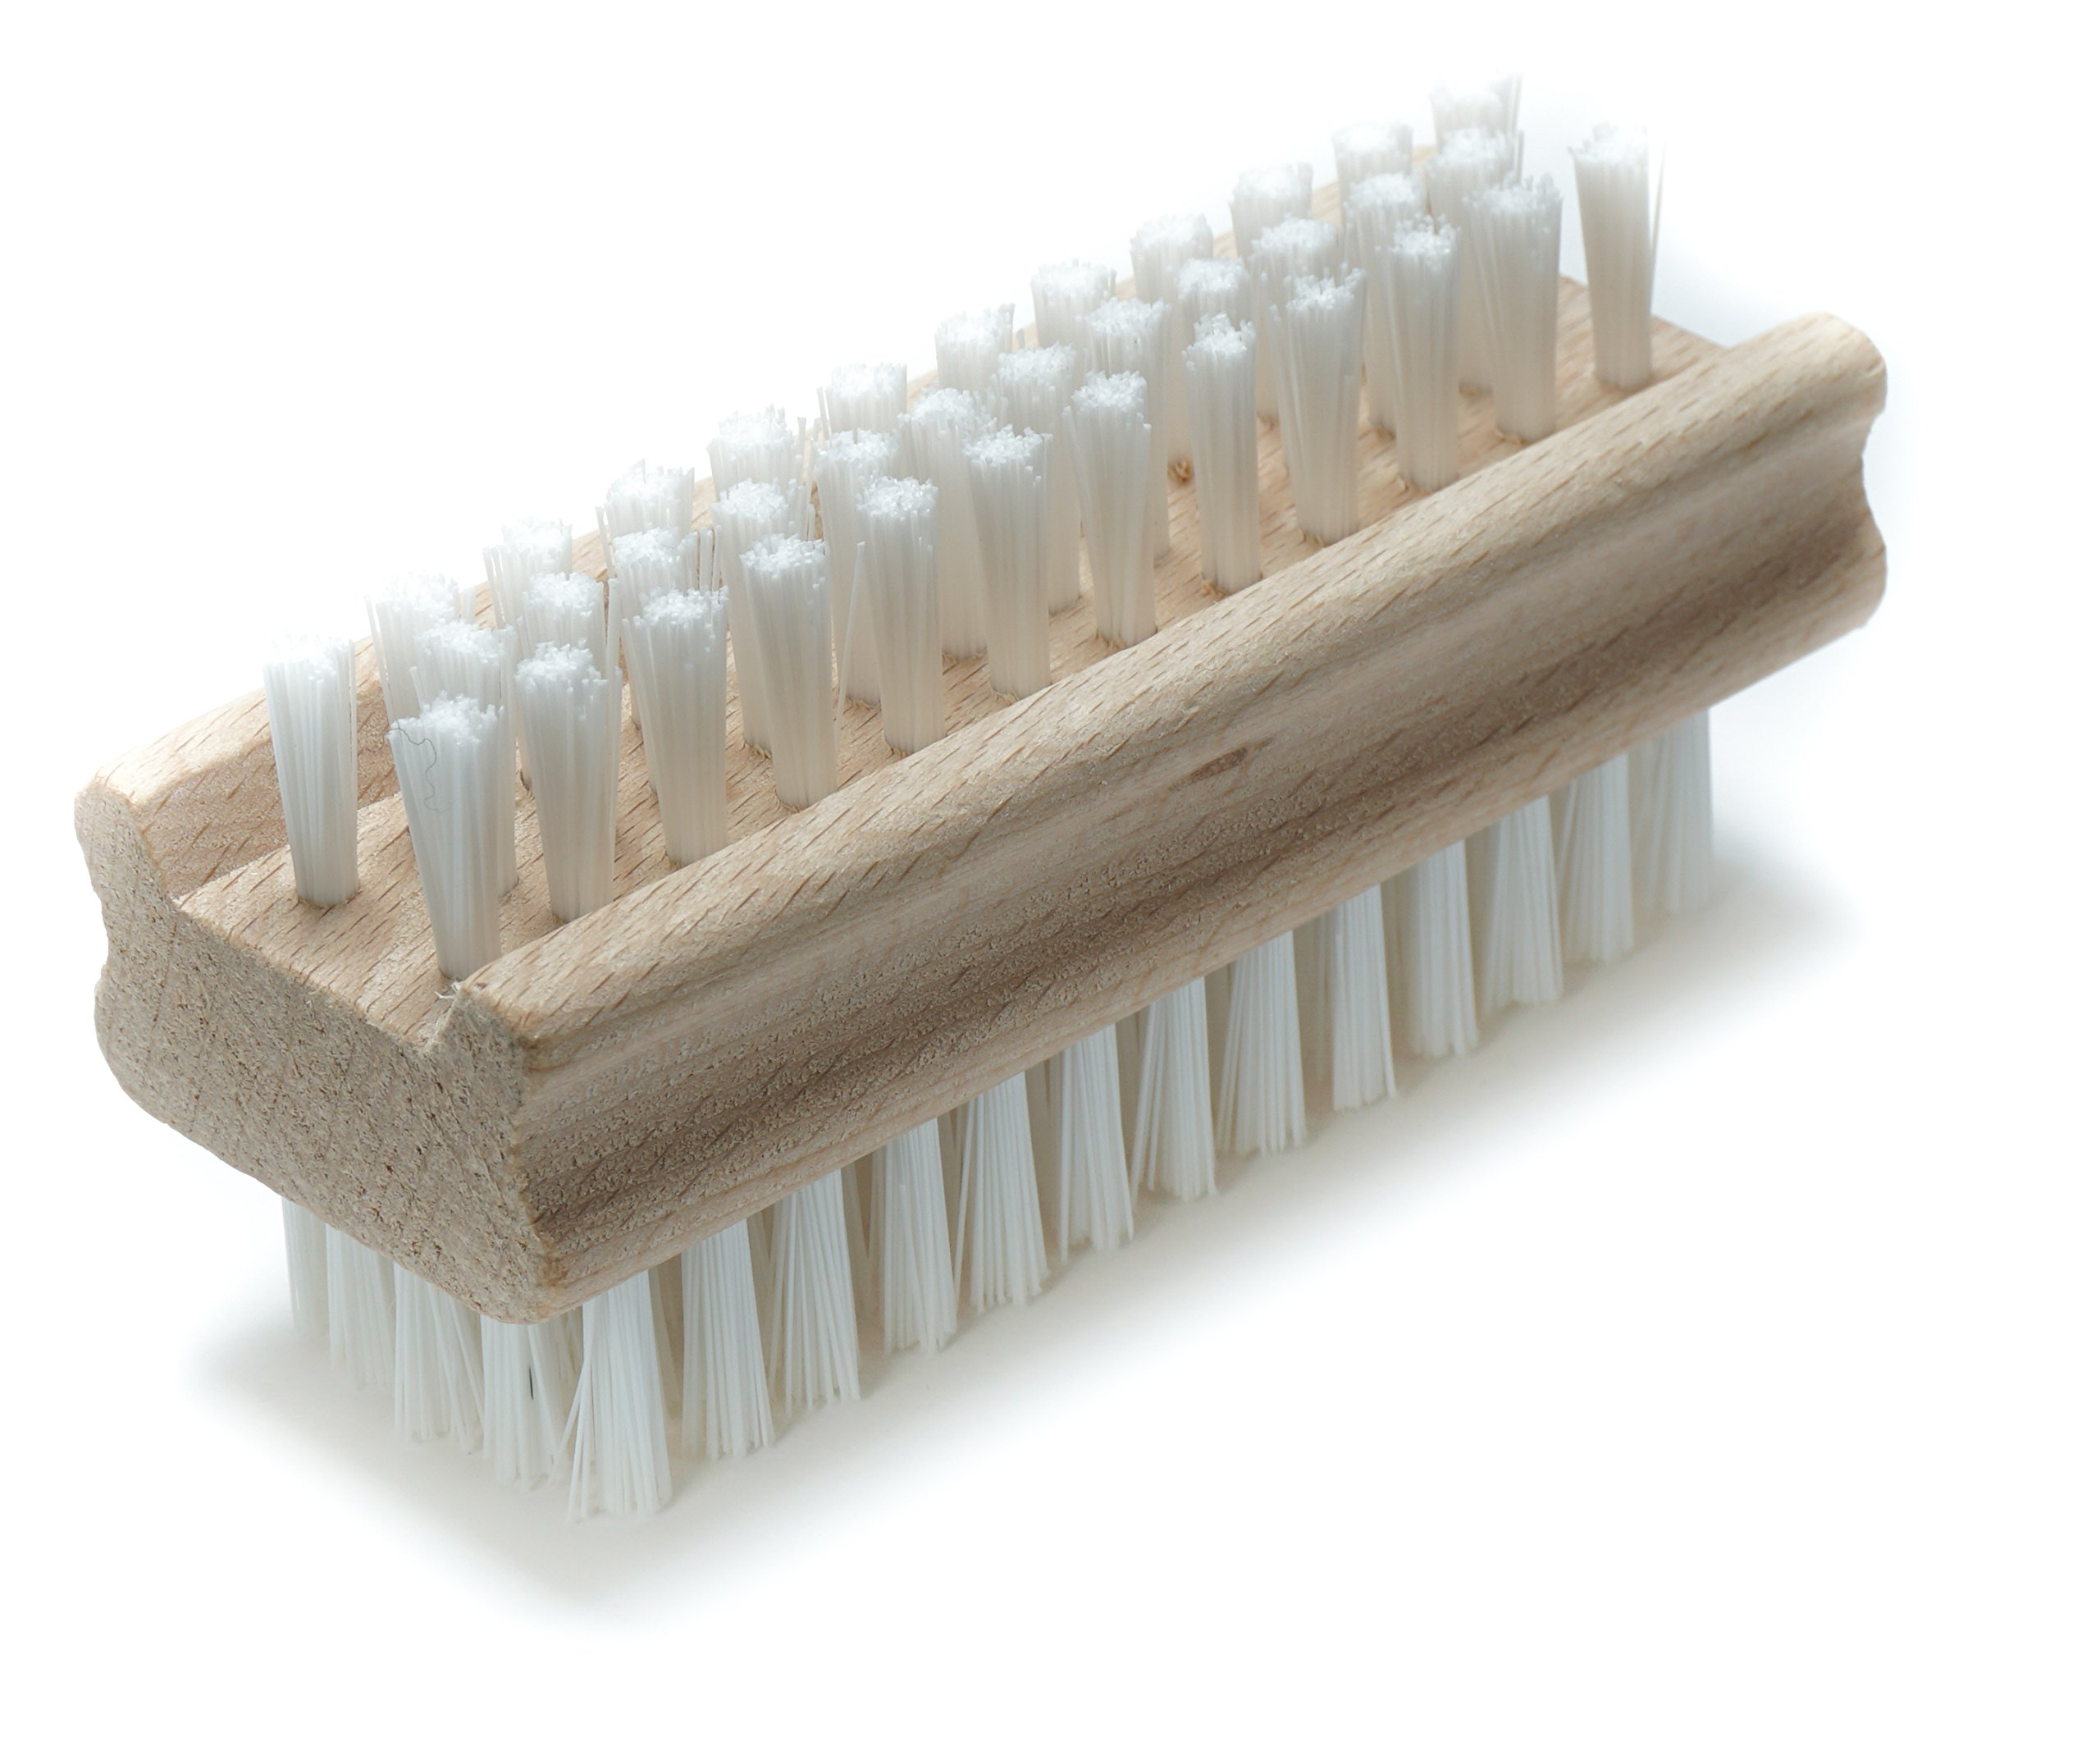 Konex Non-Slip Wooden Two-sided Hand and Nail Brush